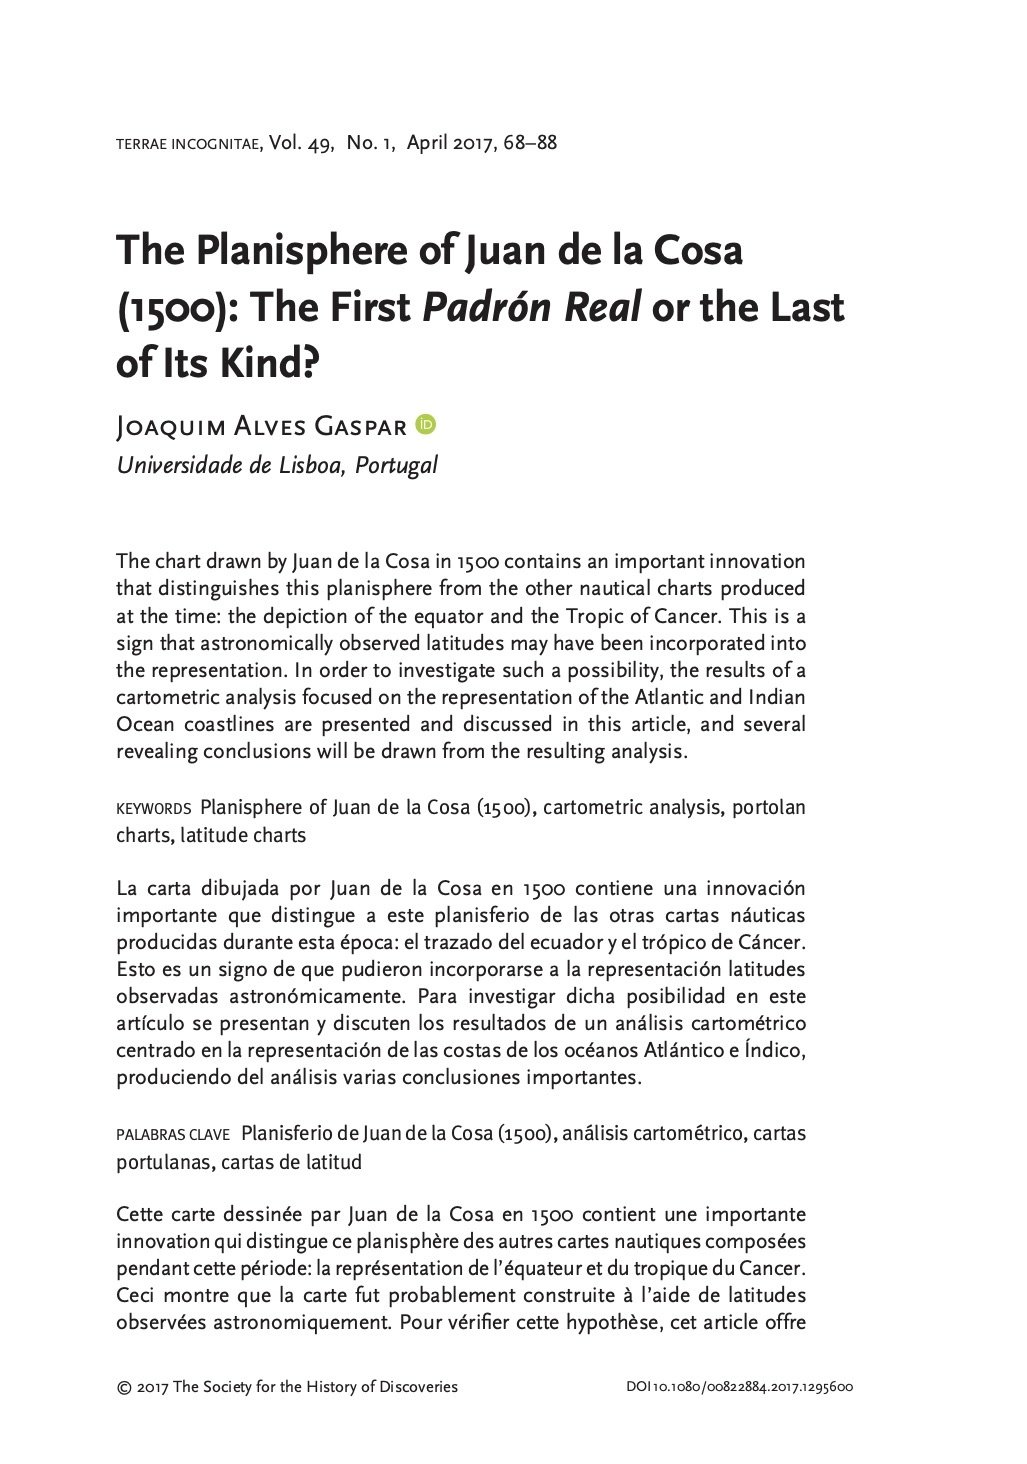 The Planisphere of Juan de la Cosa (1500): The First Padrón Real or the Last of Its Kind?, Capa